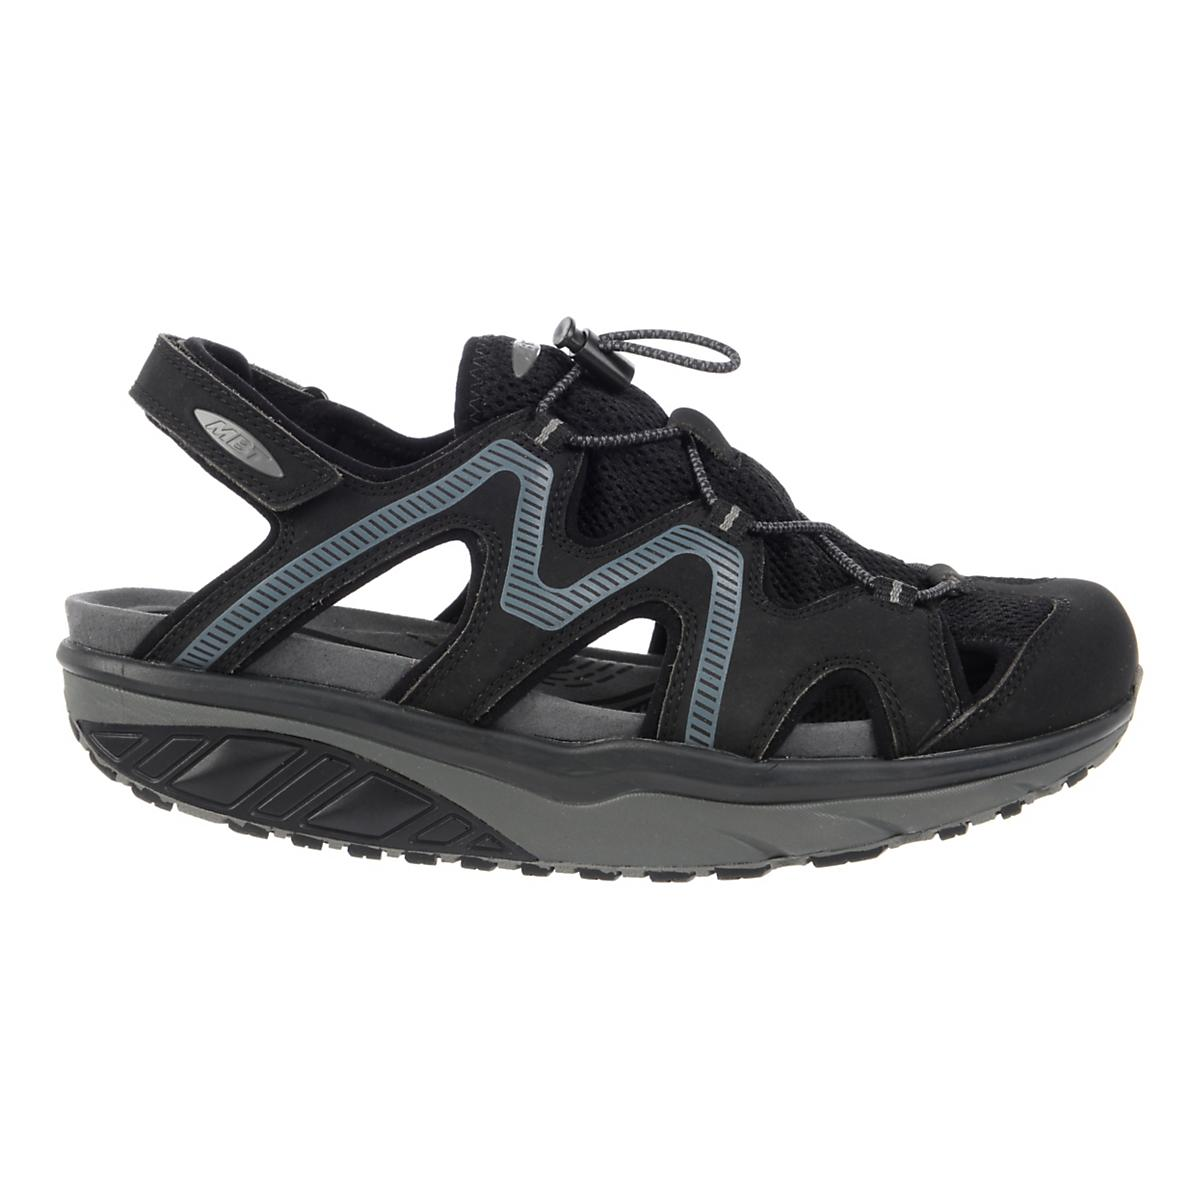 Men's MBT�Jefar 6 Trail Sandal